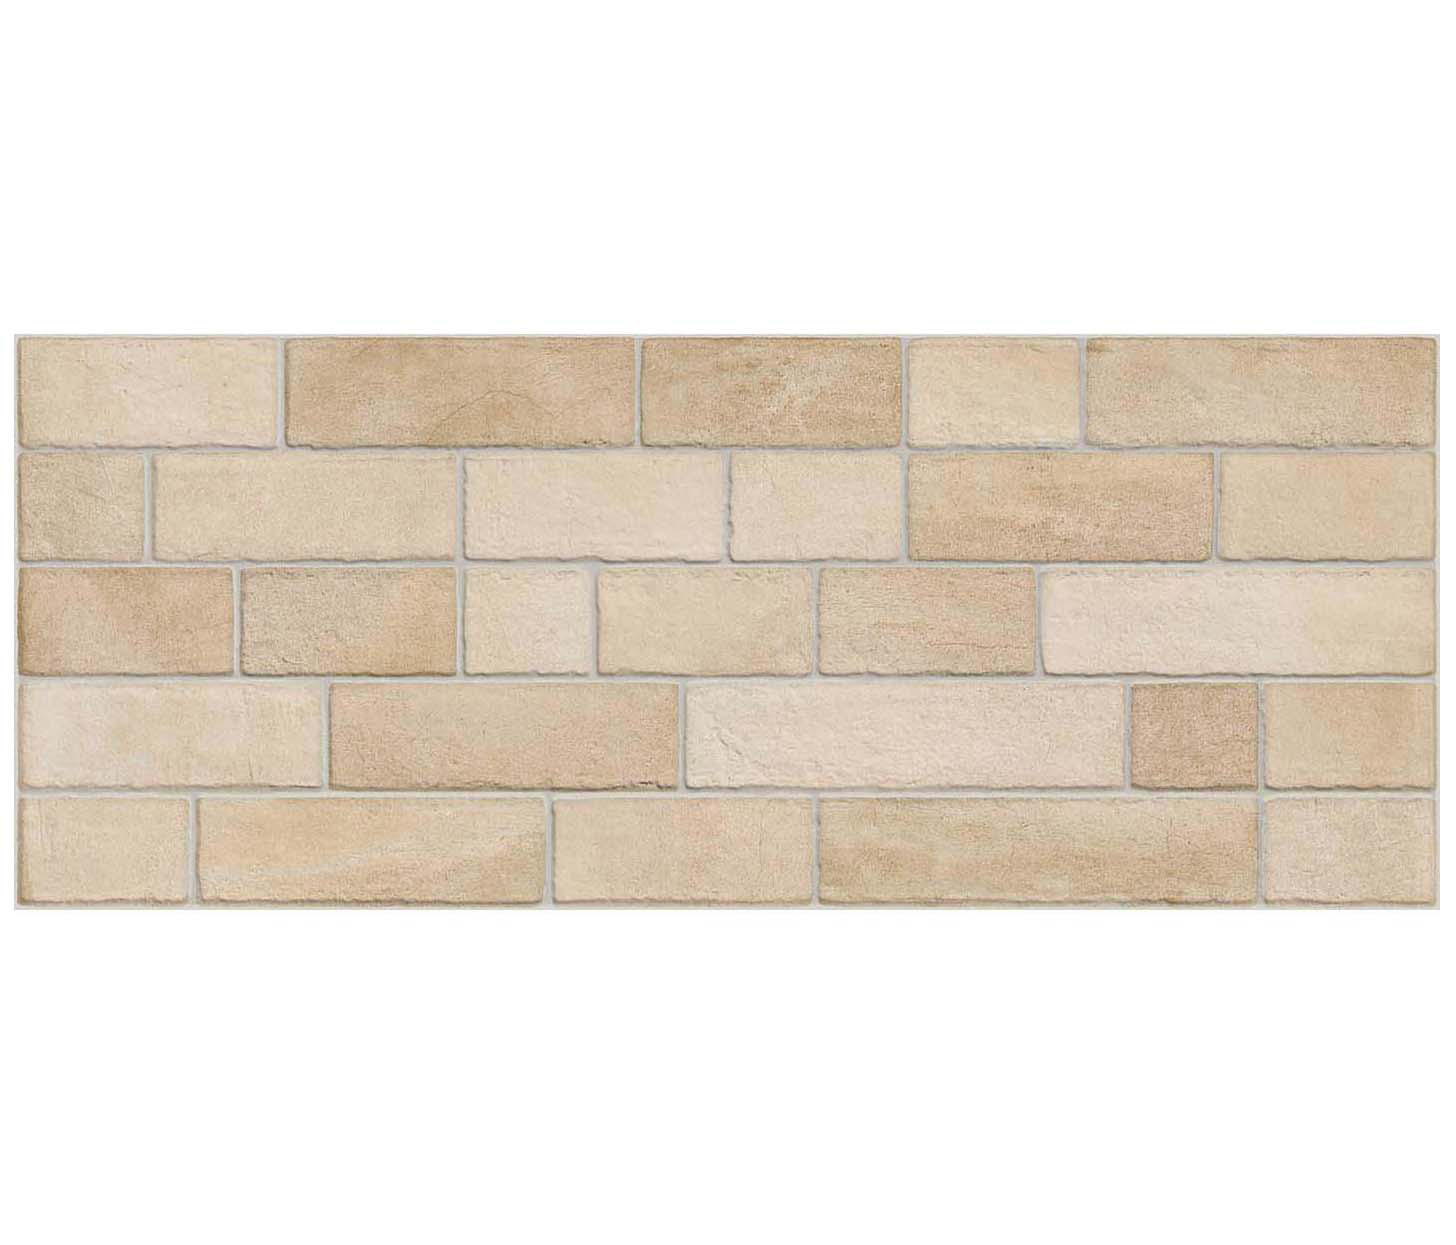 Marlon beige ceramic tiles from vives cer mica architonic - Vives ceramica ...